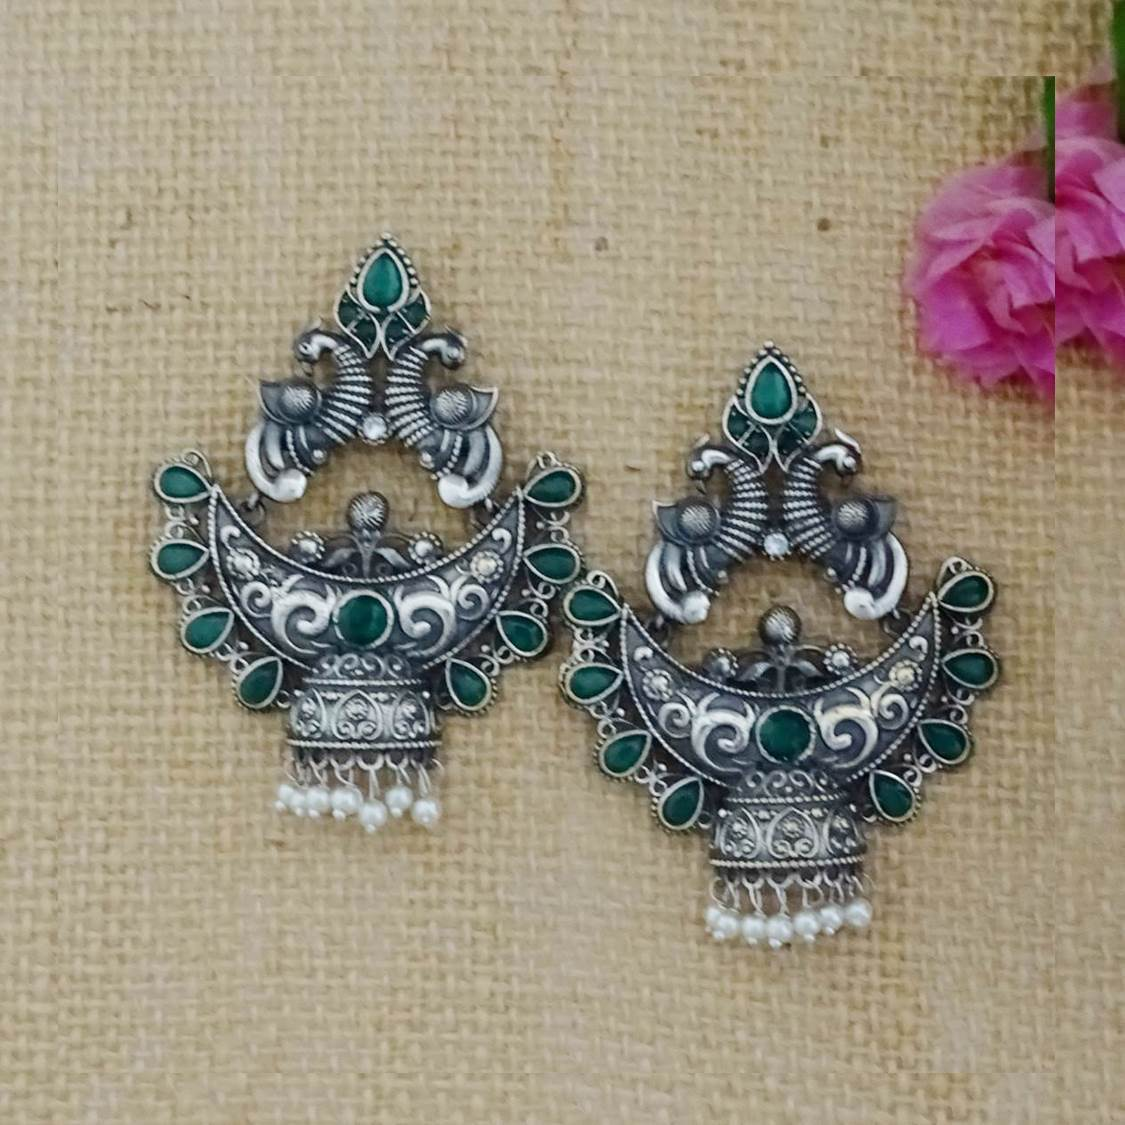 Oxidised German Silver Peacock Design With Plasto Stones And Pearls Jhumka Earring-GEMS N PEARLS-Earring